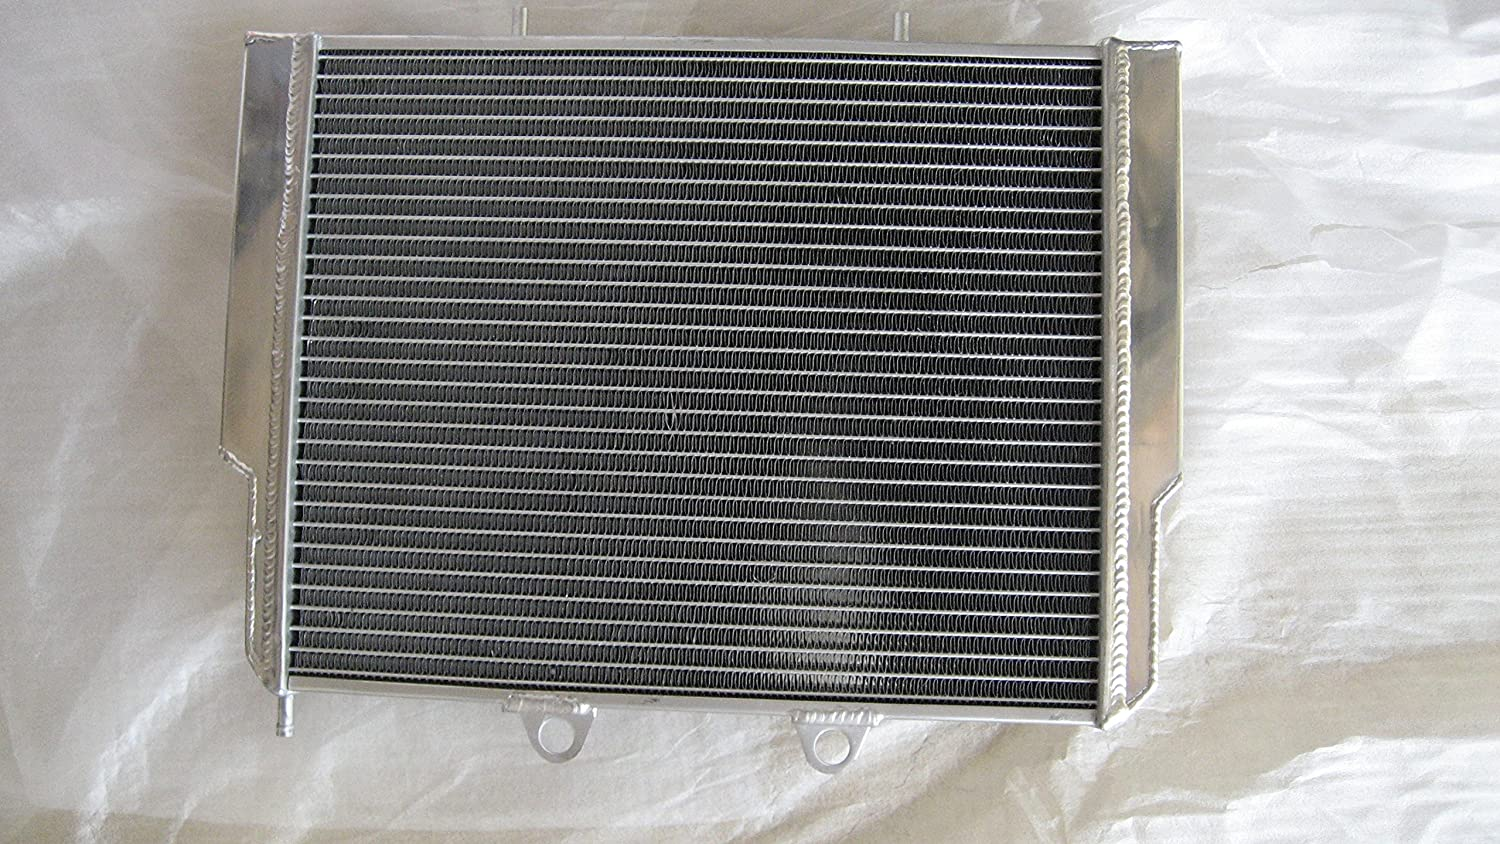 ATV Engine Cooling Aluminum Radiator Polaris Ranger RZR  570 12 13 15 16 17 18